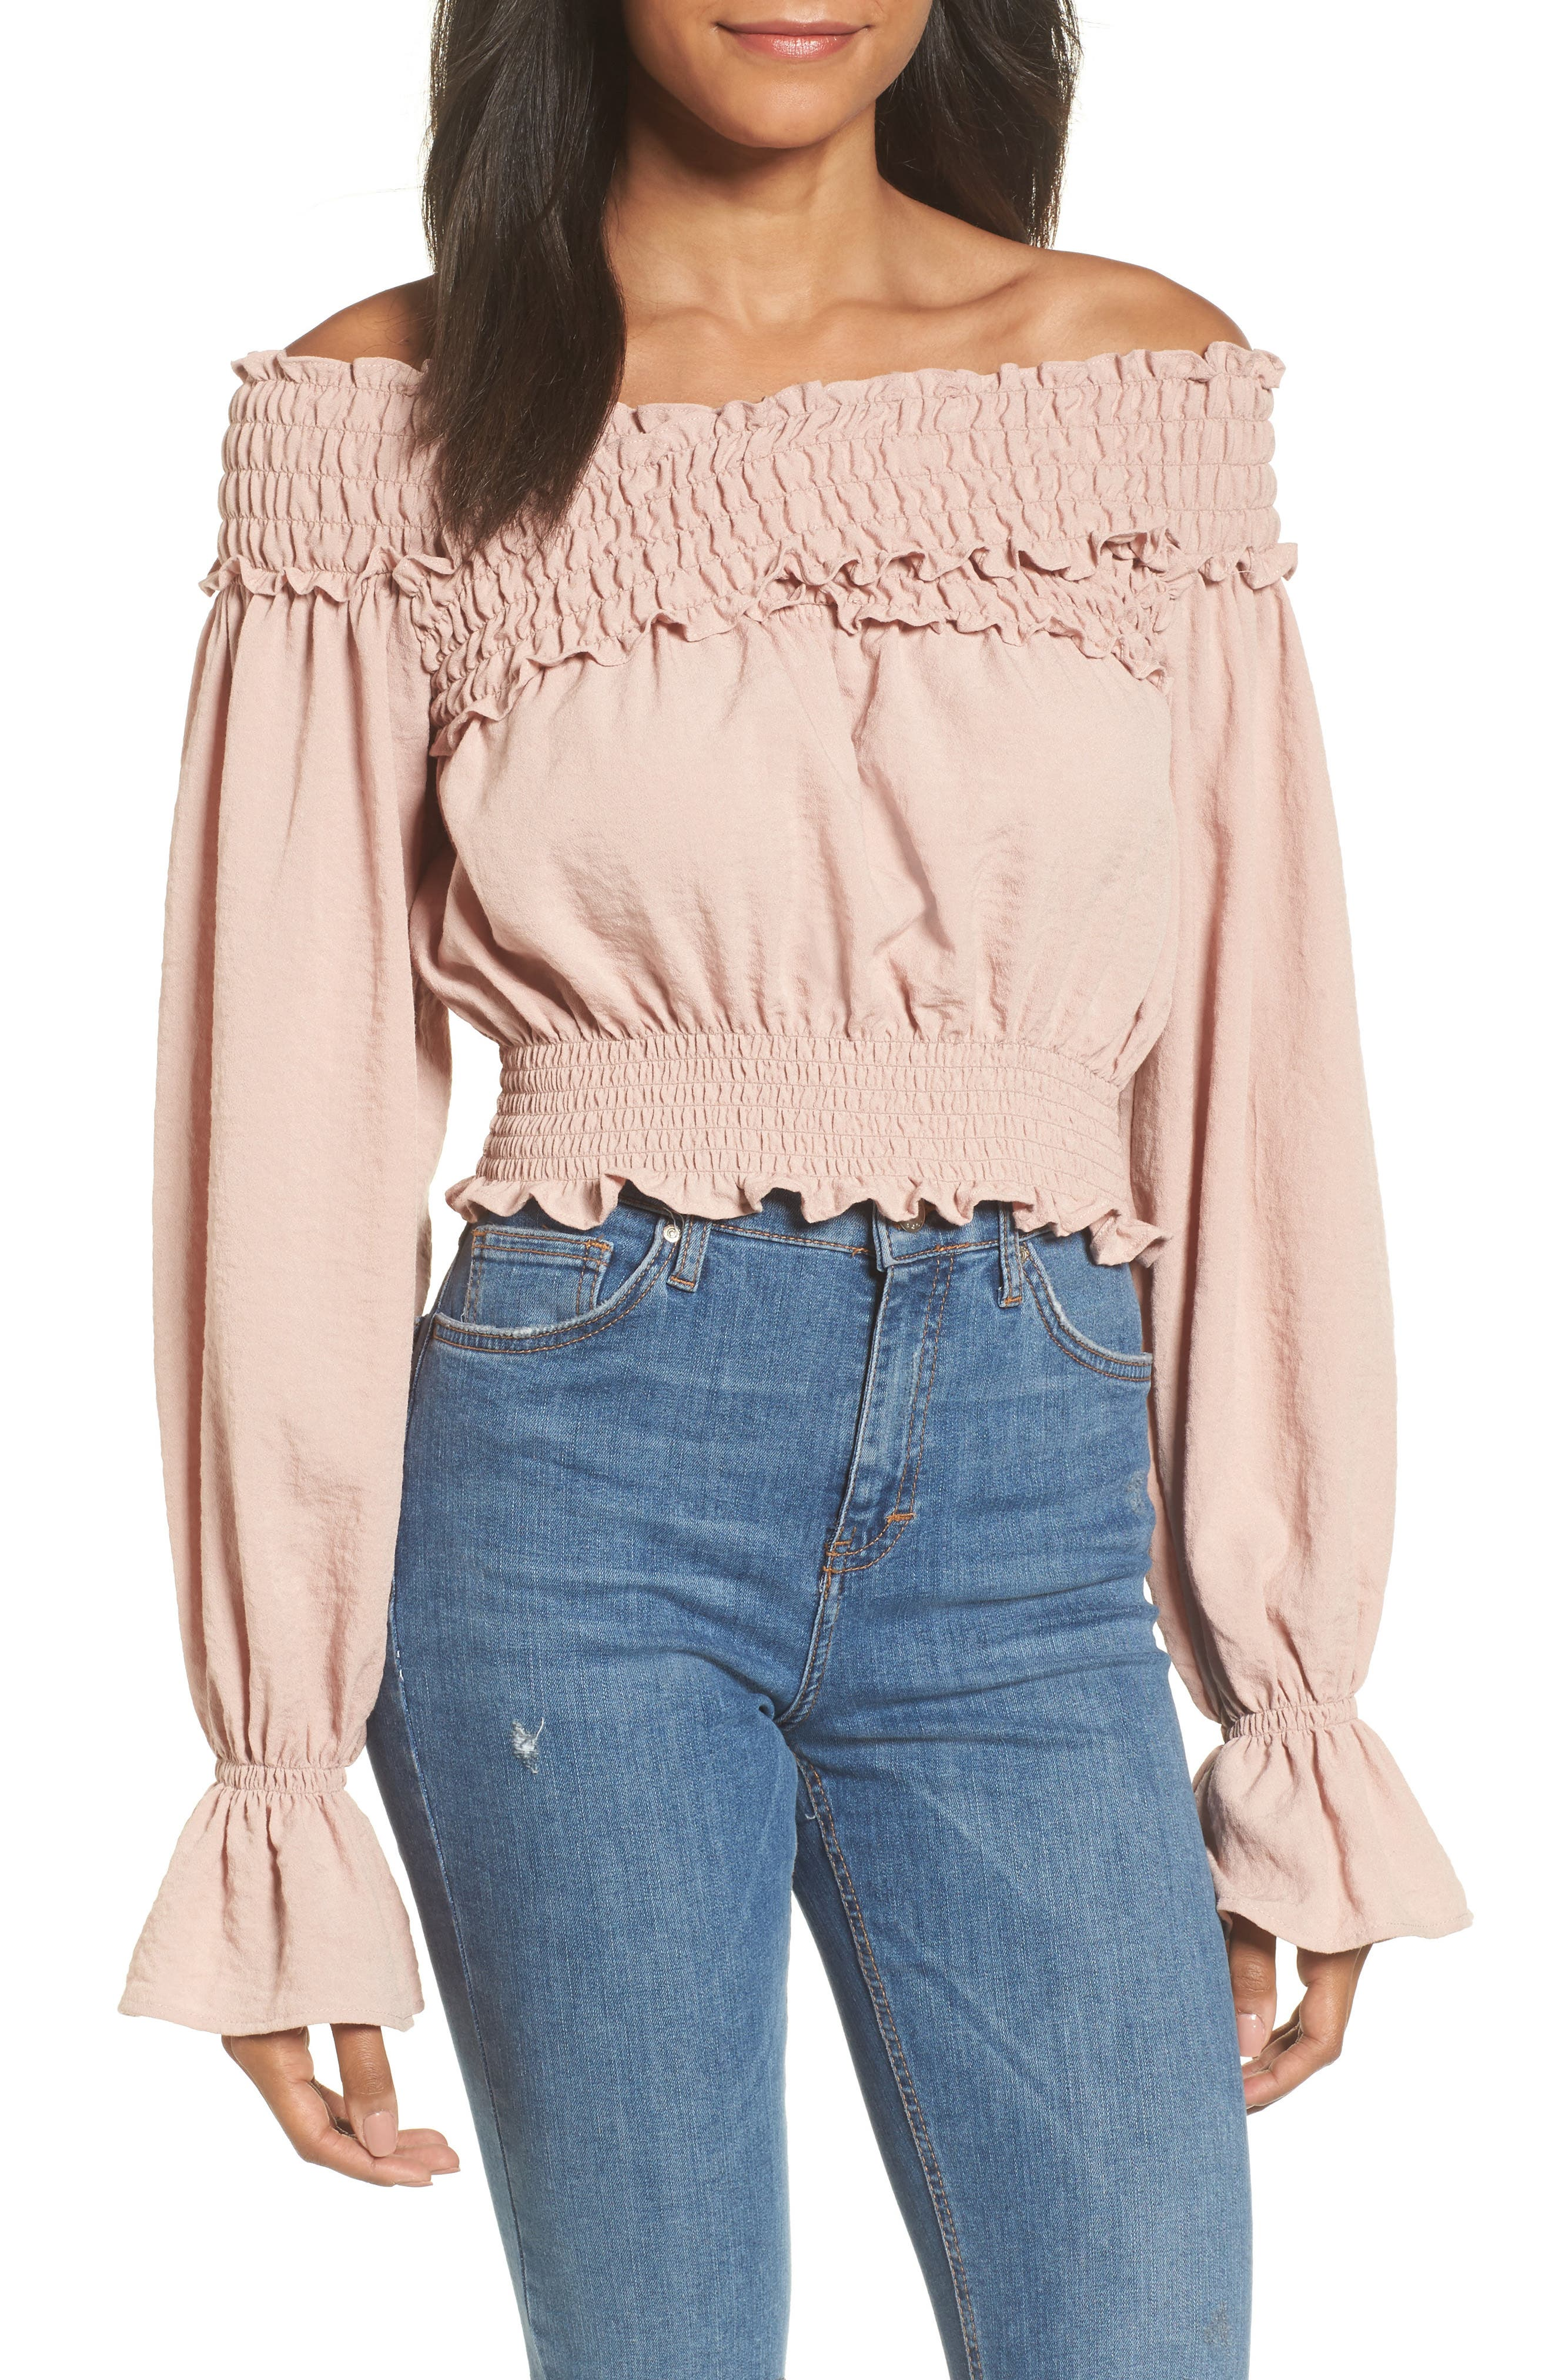 Delany Off the Shoulder Crop Top,                             Main thumbnail 1, color,                             650